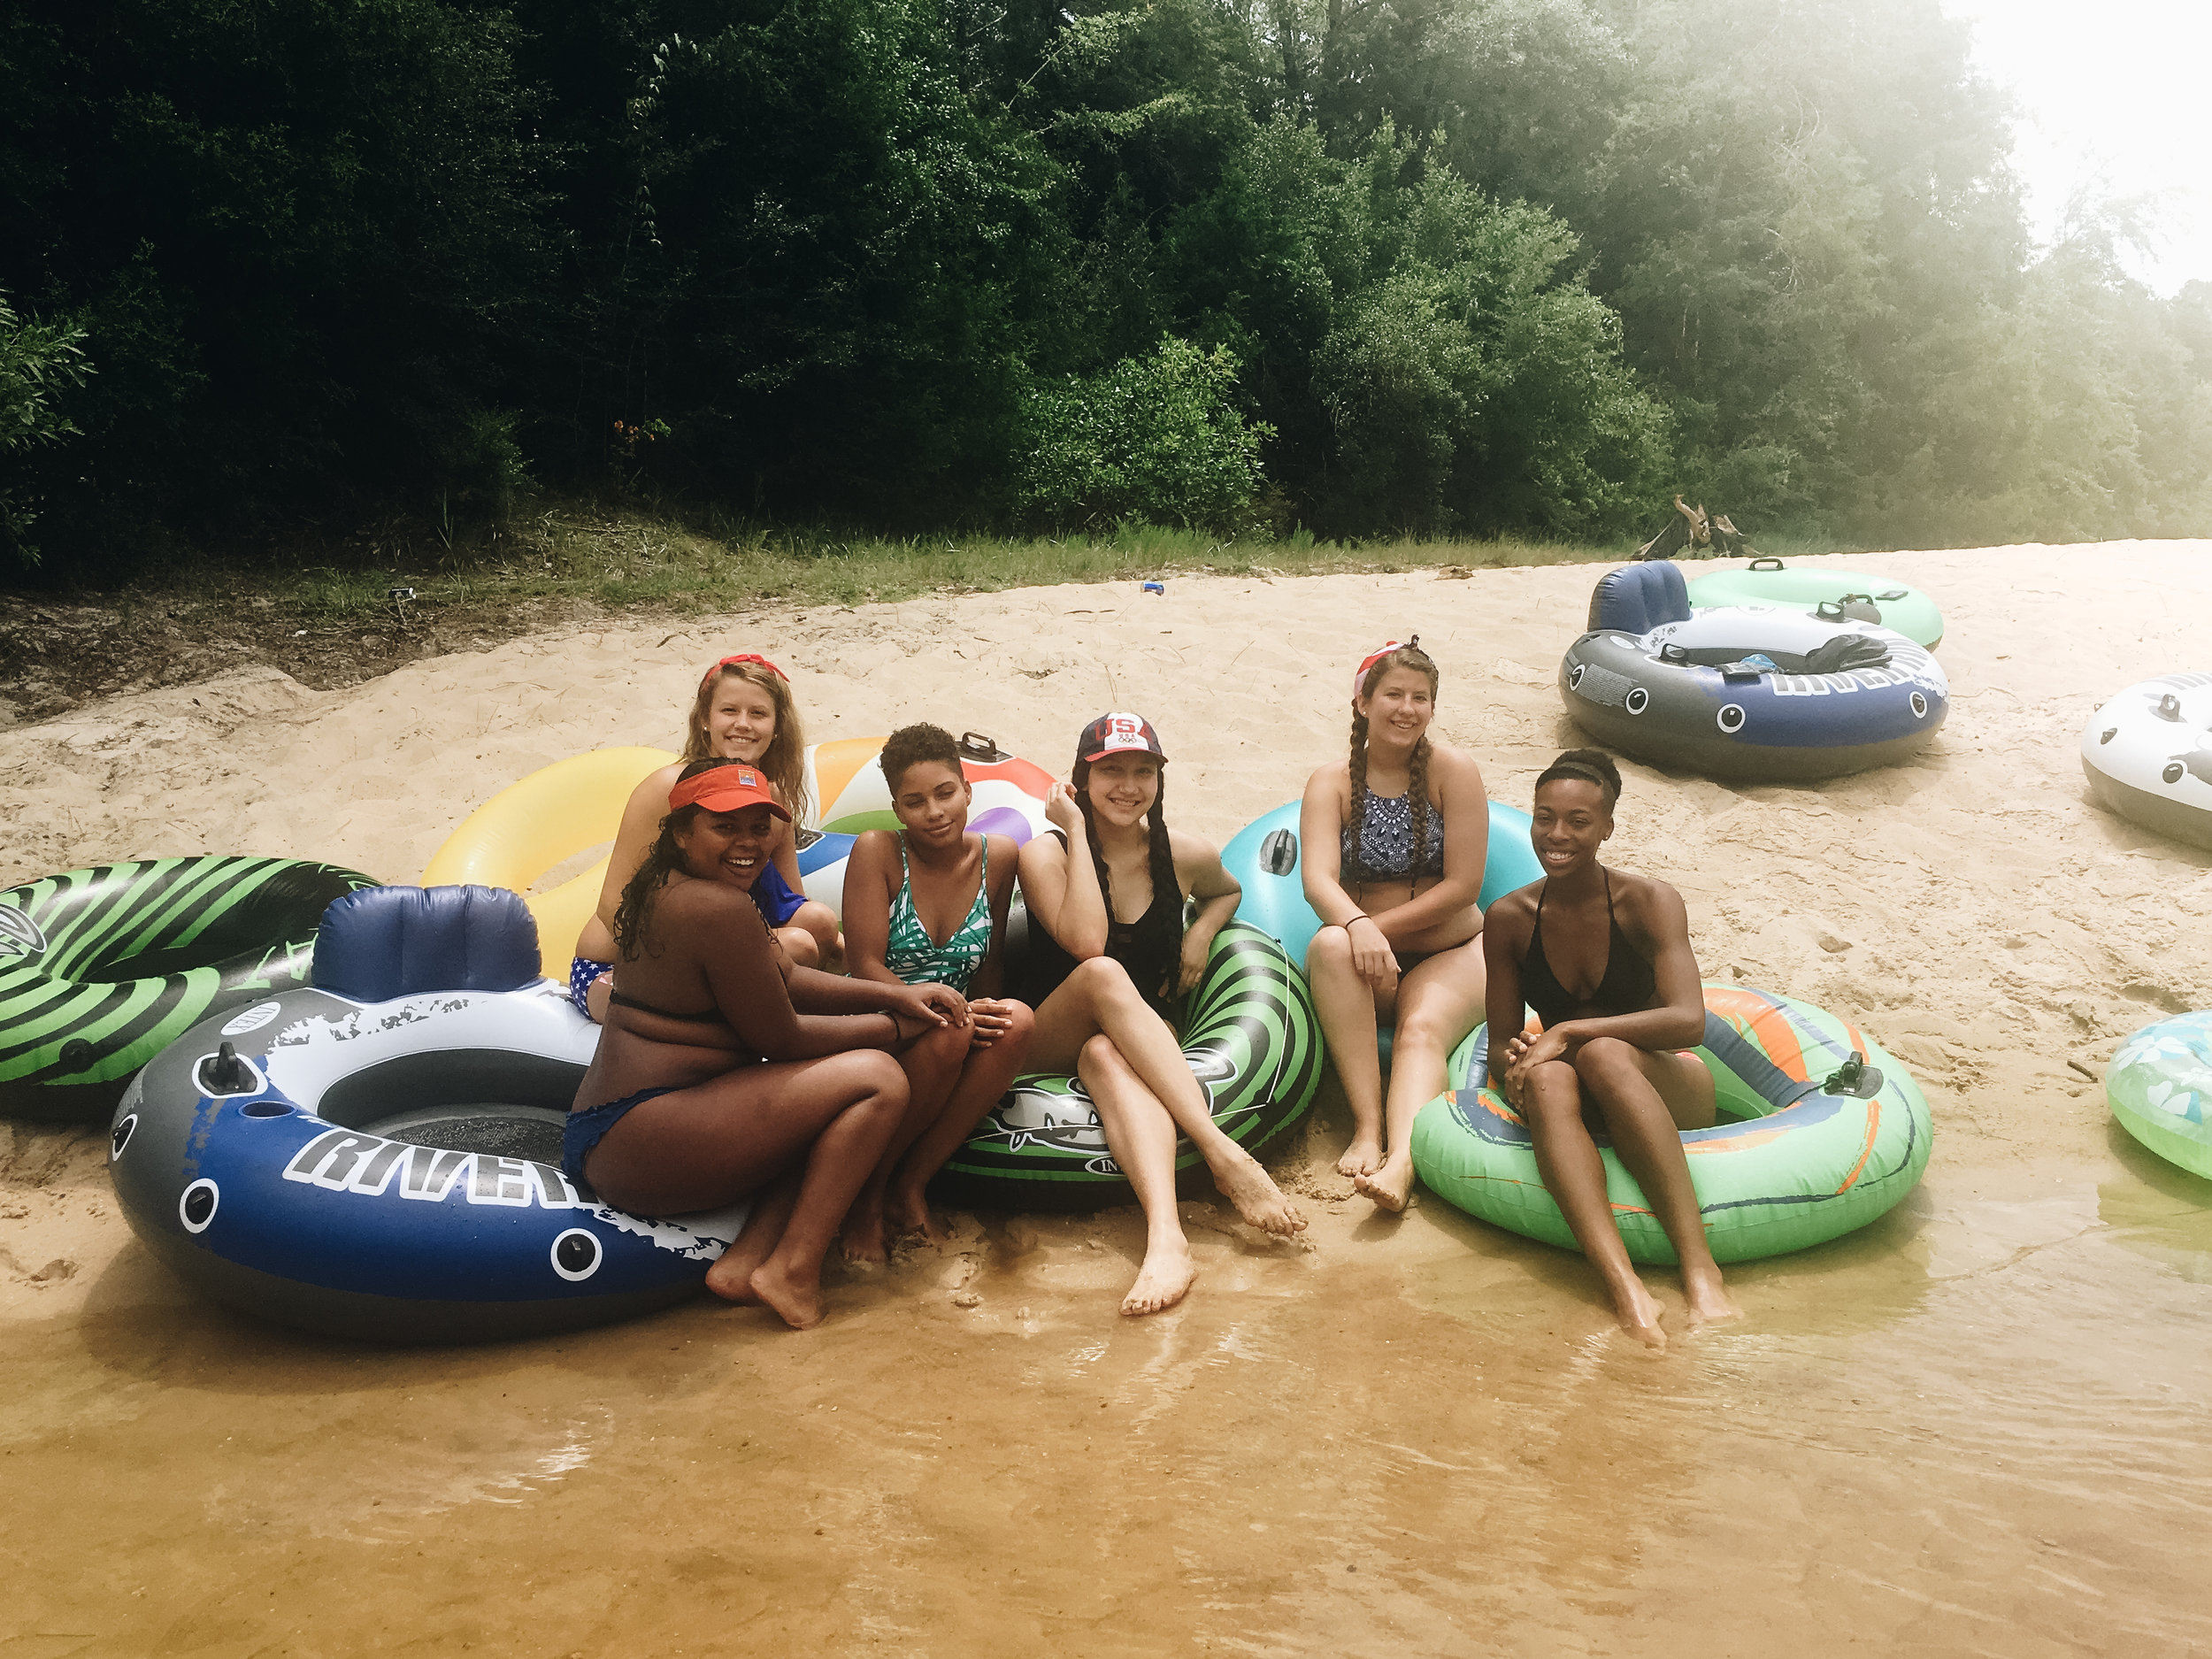 Tubing with Adventures Unlimited